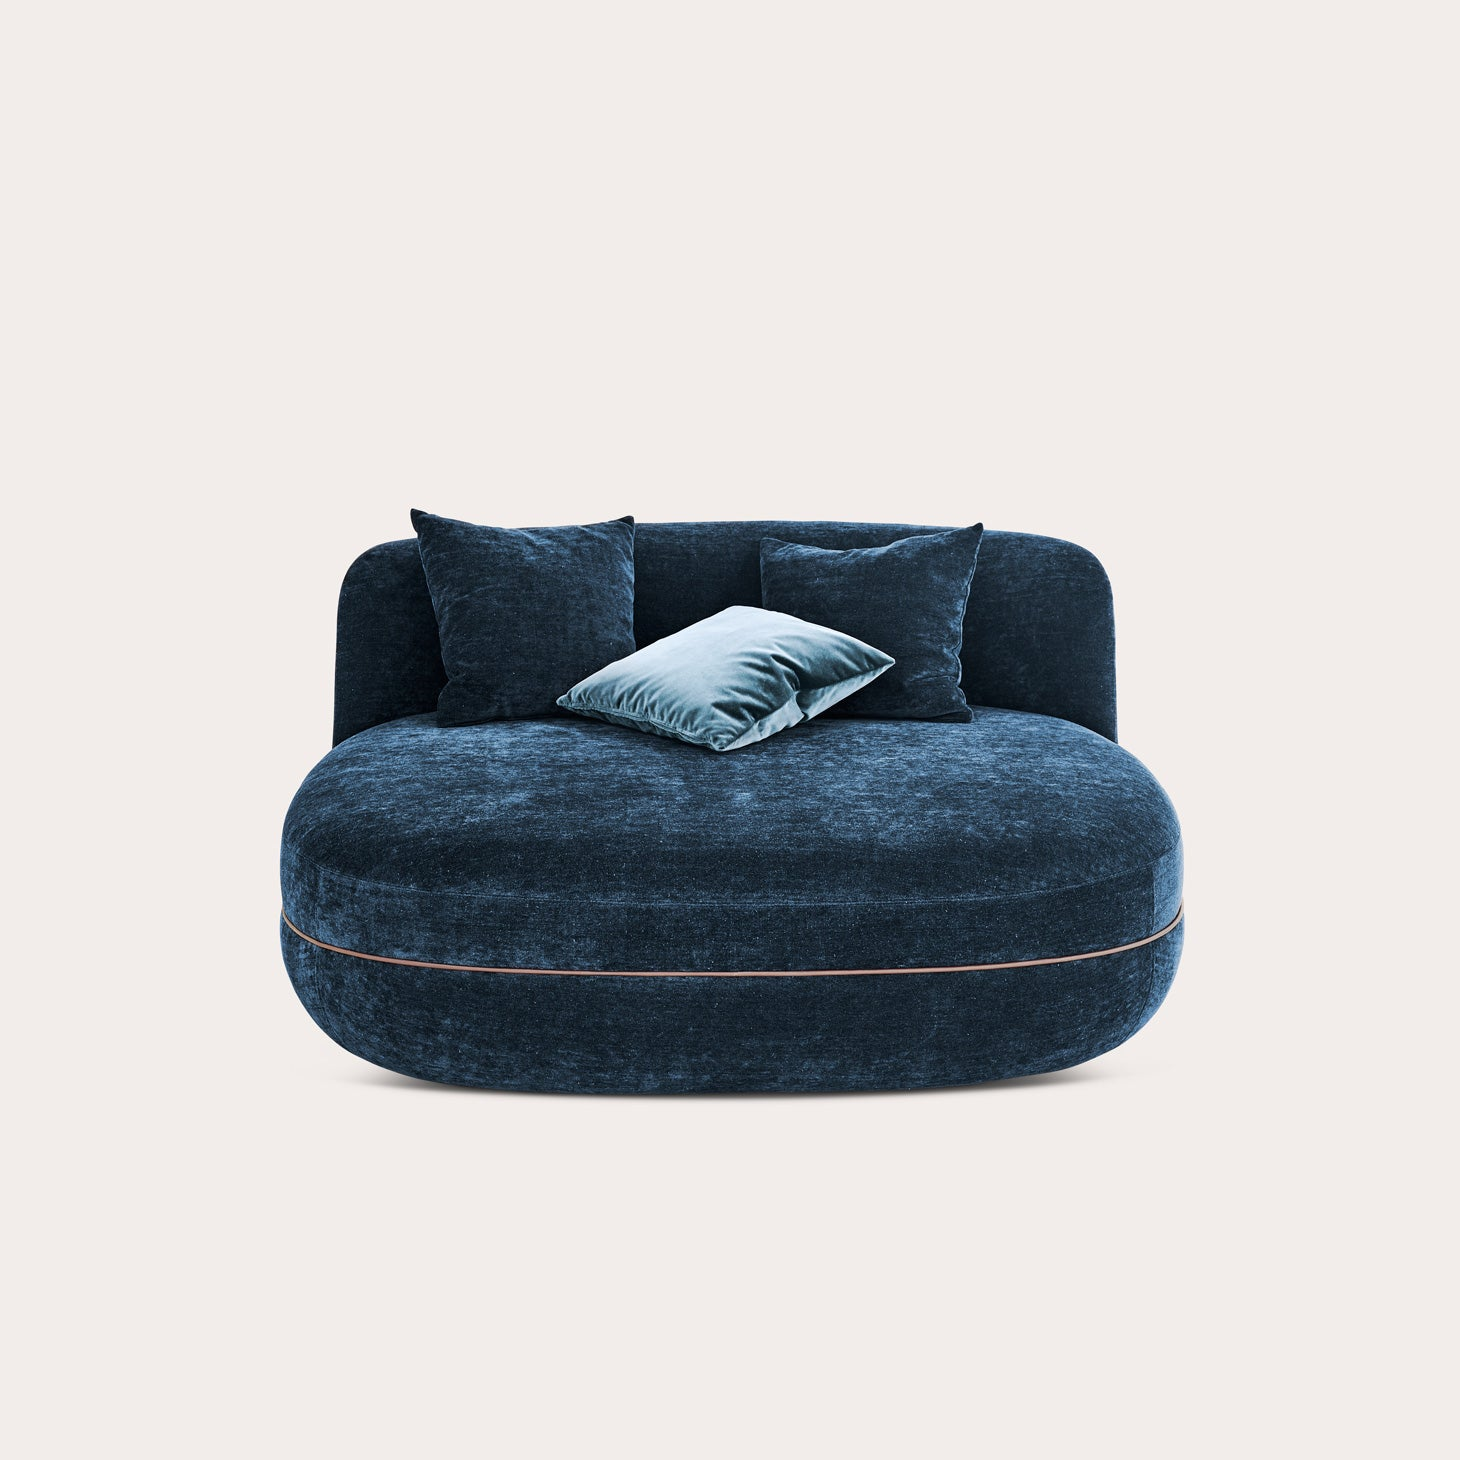 Miles Pouflongue Seating Sebastian Herkner Designer Furniture Sku: 758-240-10223